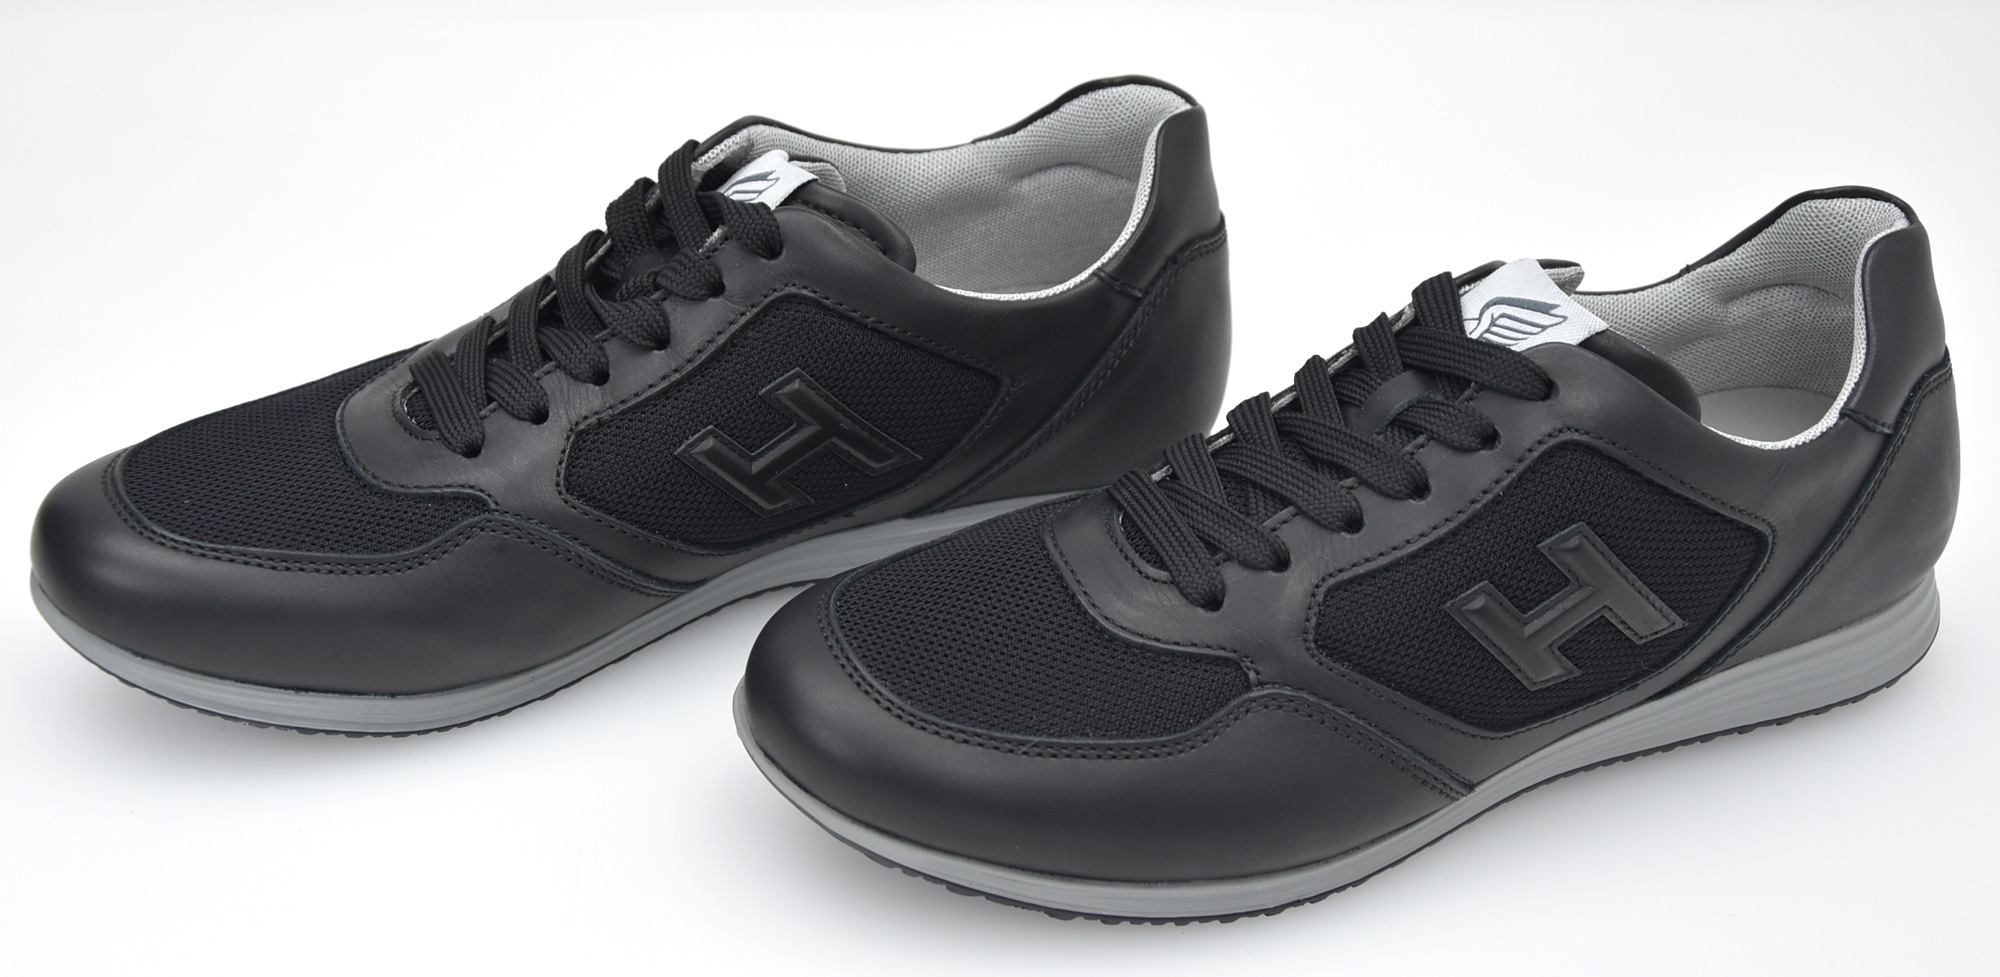 le dernier a60d4 34db0 Details about HOGAN OLYMPIA X MAN SNEAKER SHOES CASUAL FREE TIME LEATHER  HXM2050T870CXCB999